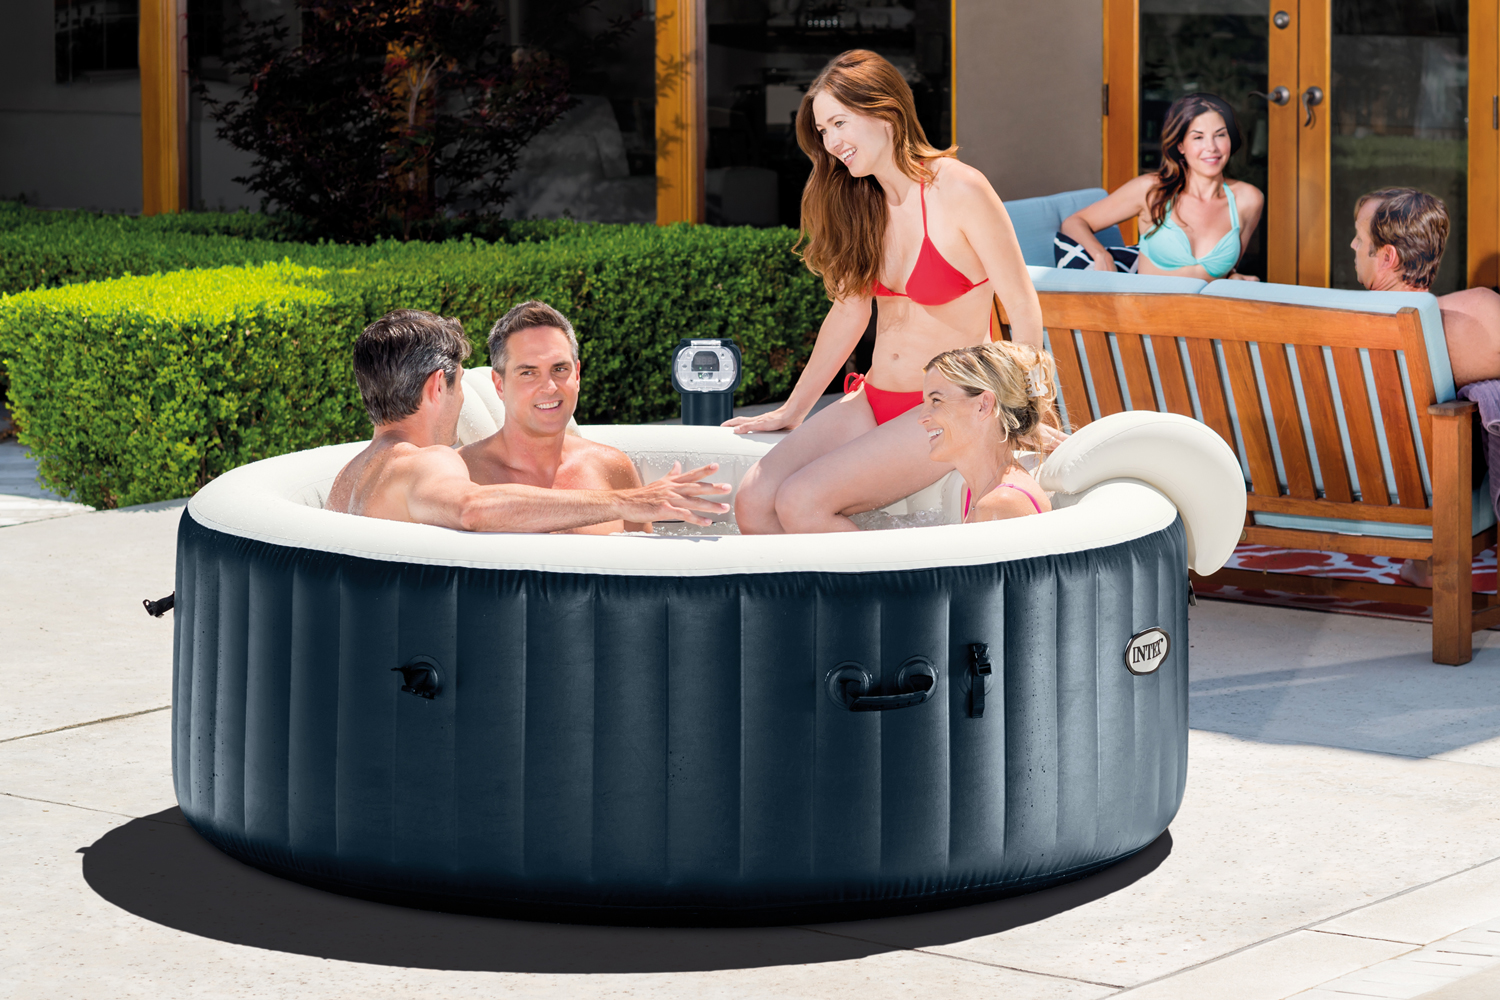 Intex portable 6 person inflatable purespa plus bubble spa laze up - How to choose a hot tub ...